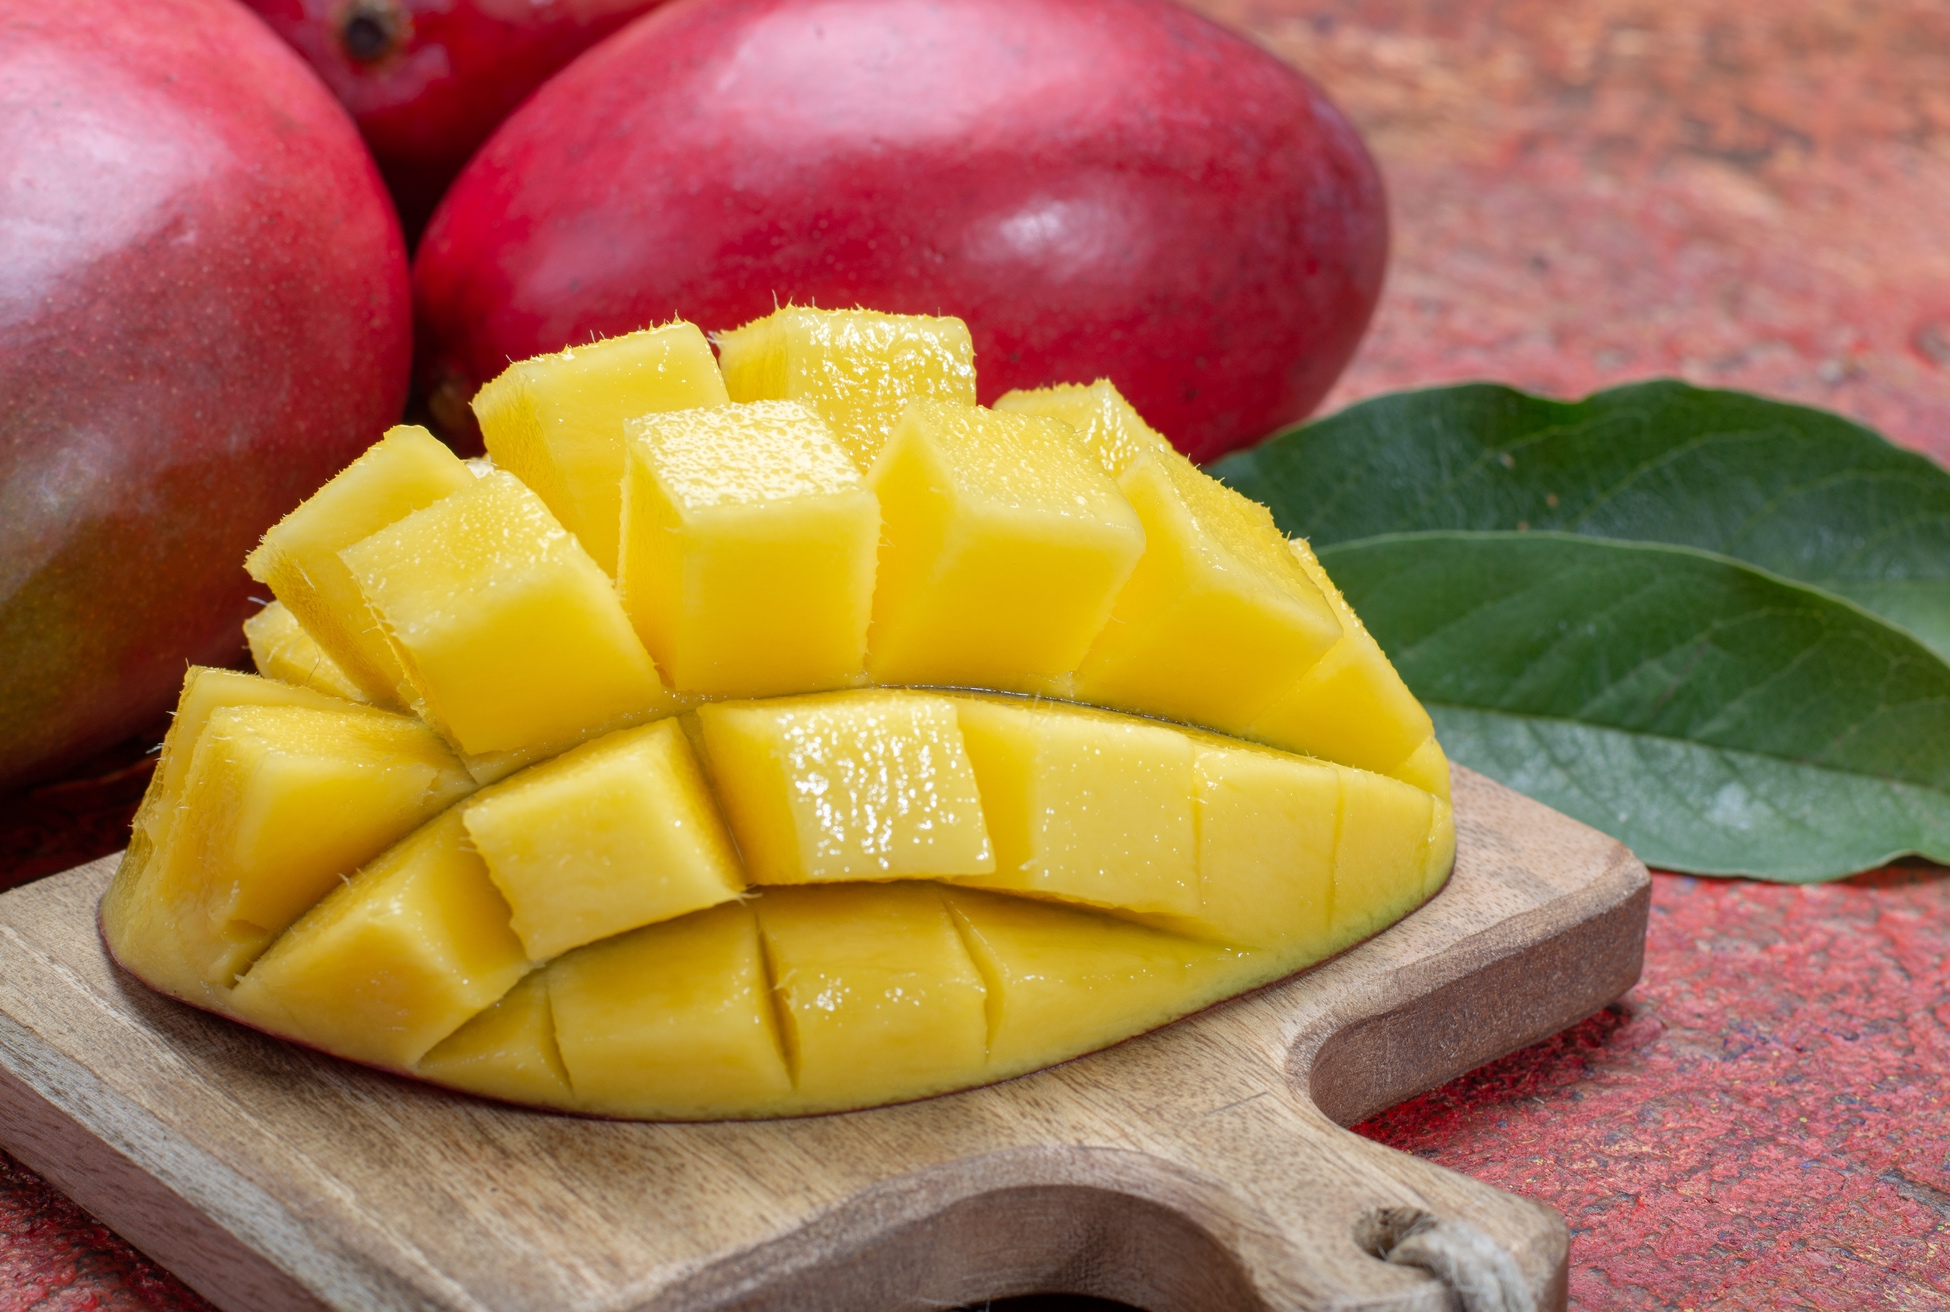 How to cut the mango to porcupine